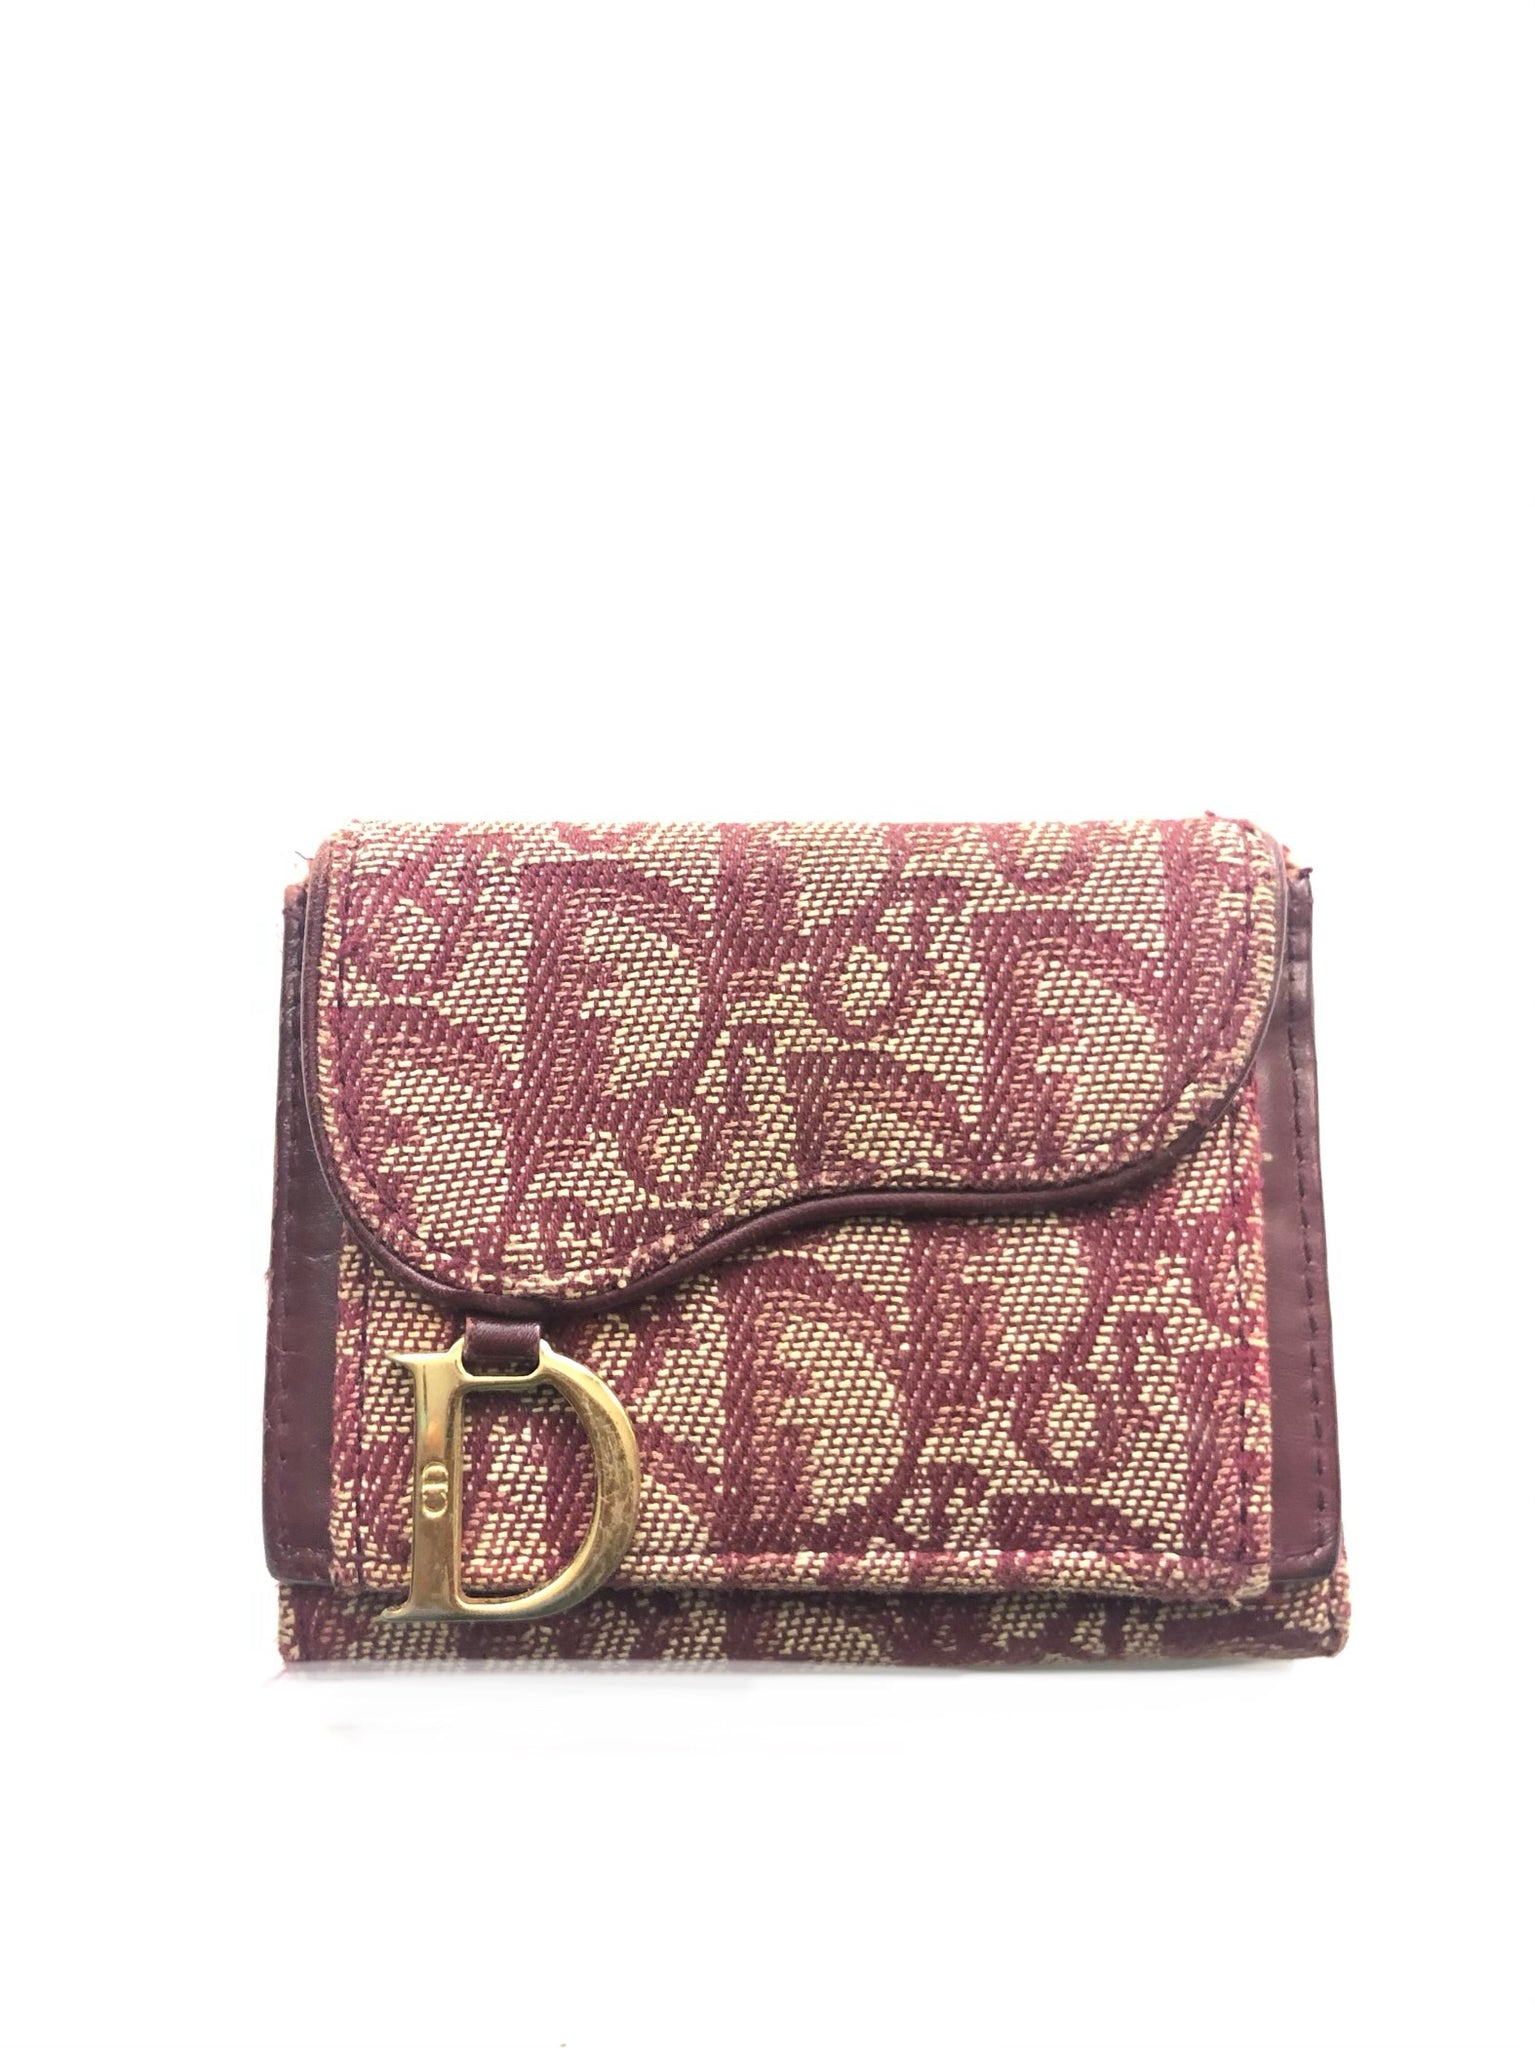 Dior Multifold Wallet Red- OS